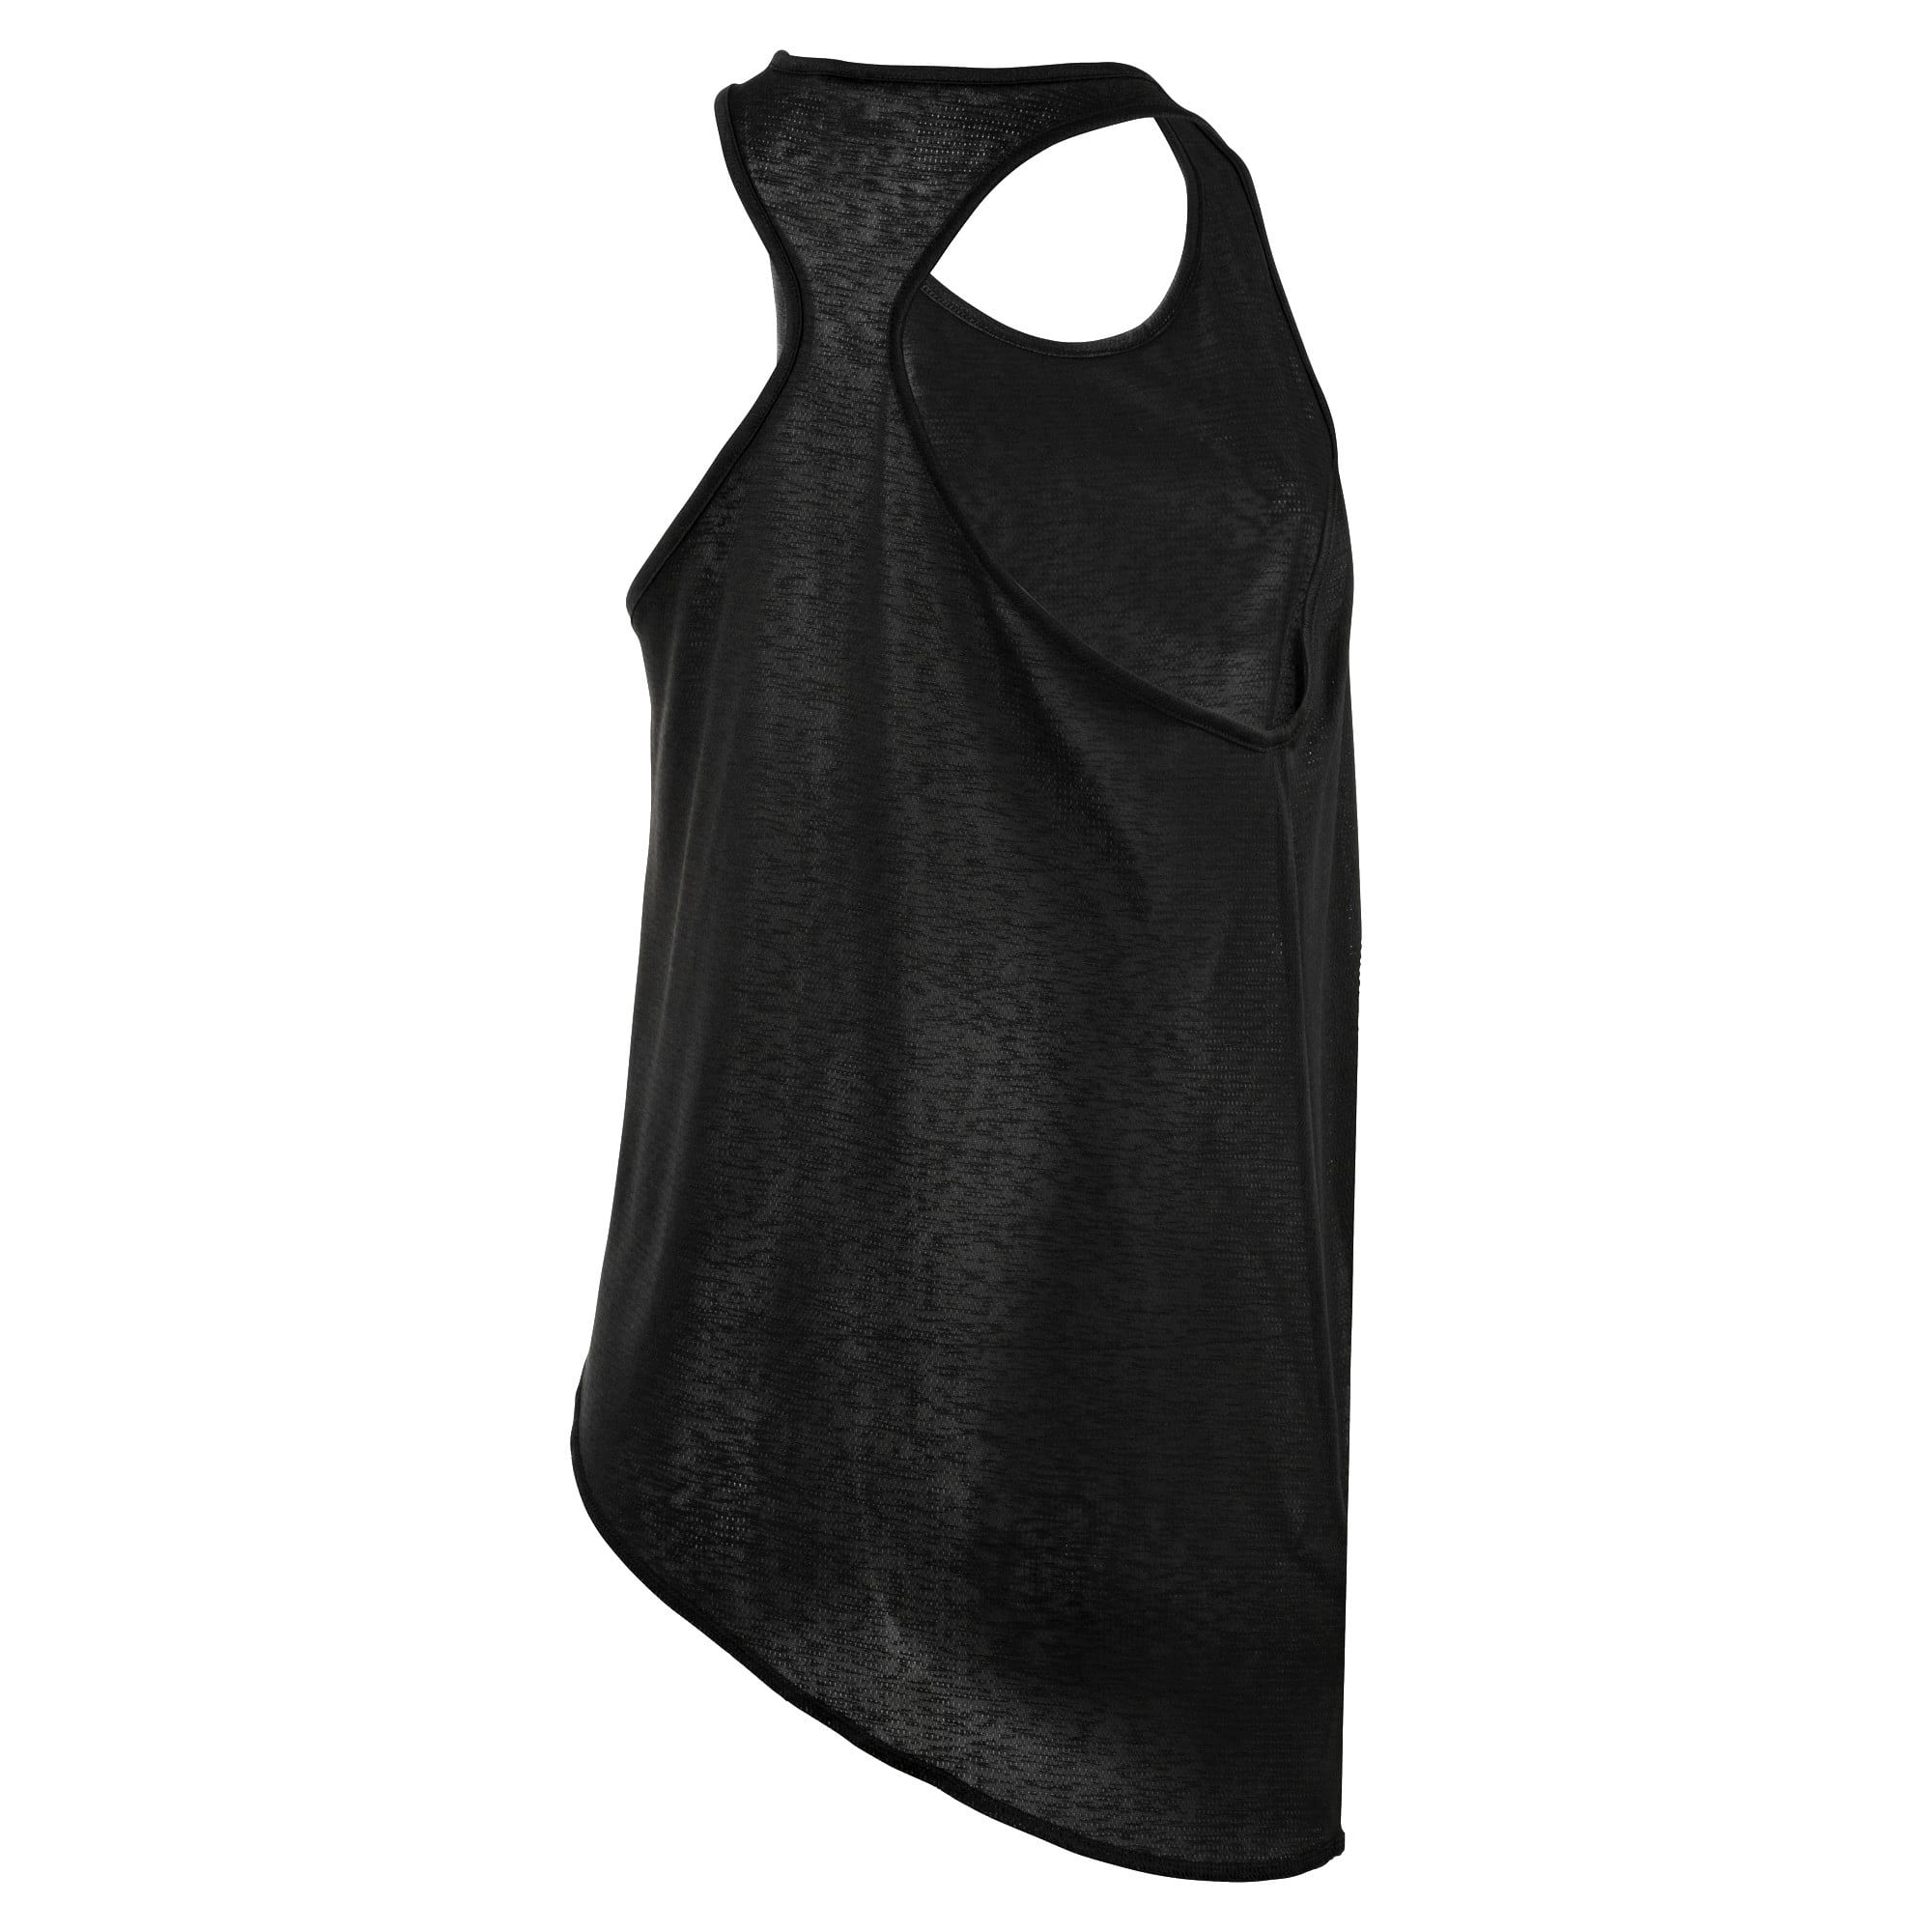 Thumbnail 2 of Training Women's A.C.E. Mono Tank Top, Puma Black, medium